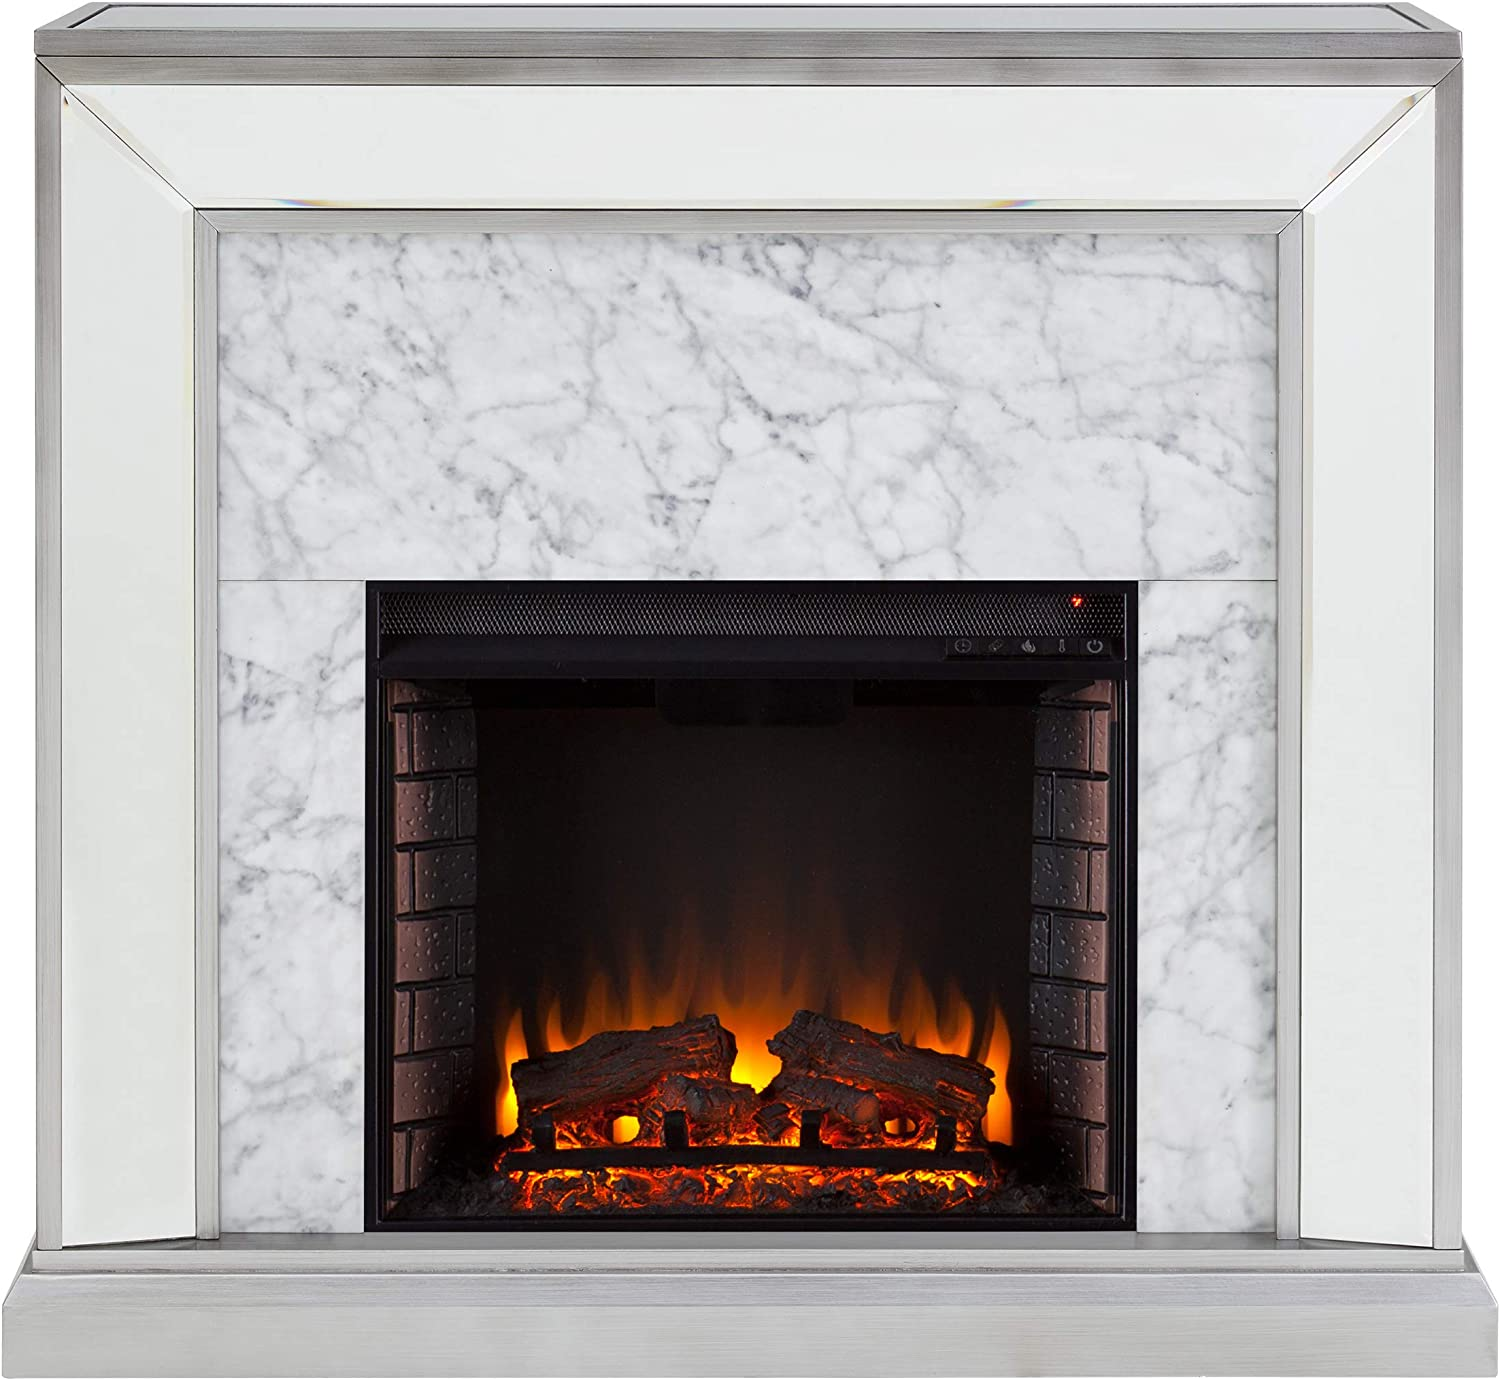 SEI Furniture Trandling Mirrored & Faux Electric Fireplace, Antique Silver/White Marble